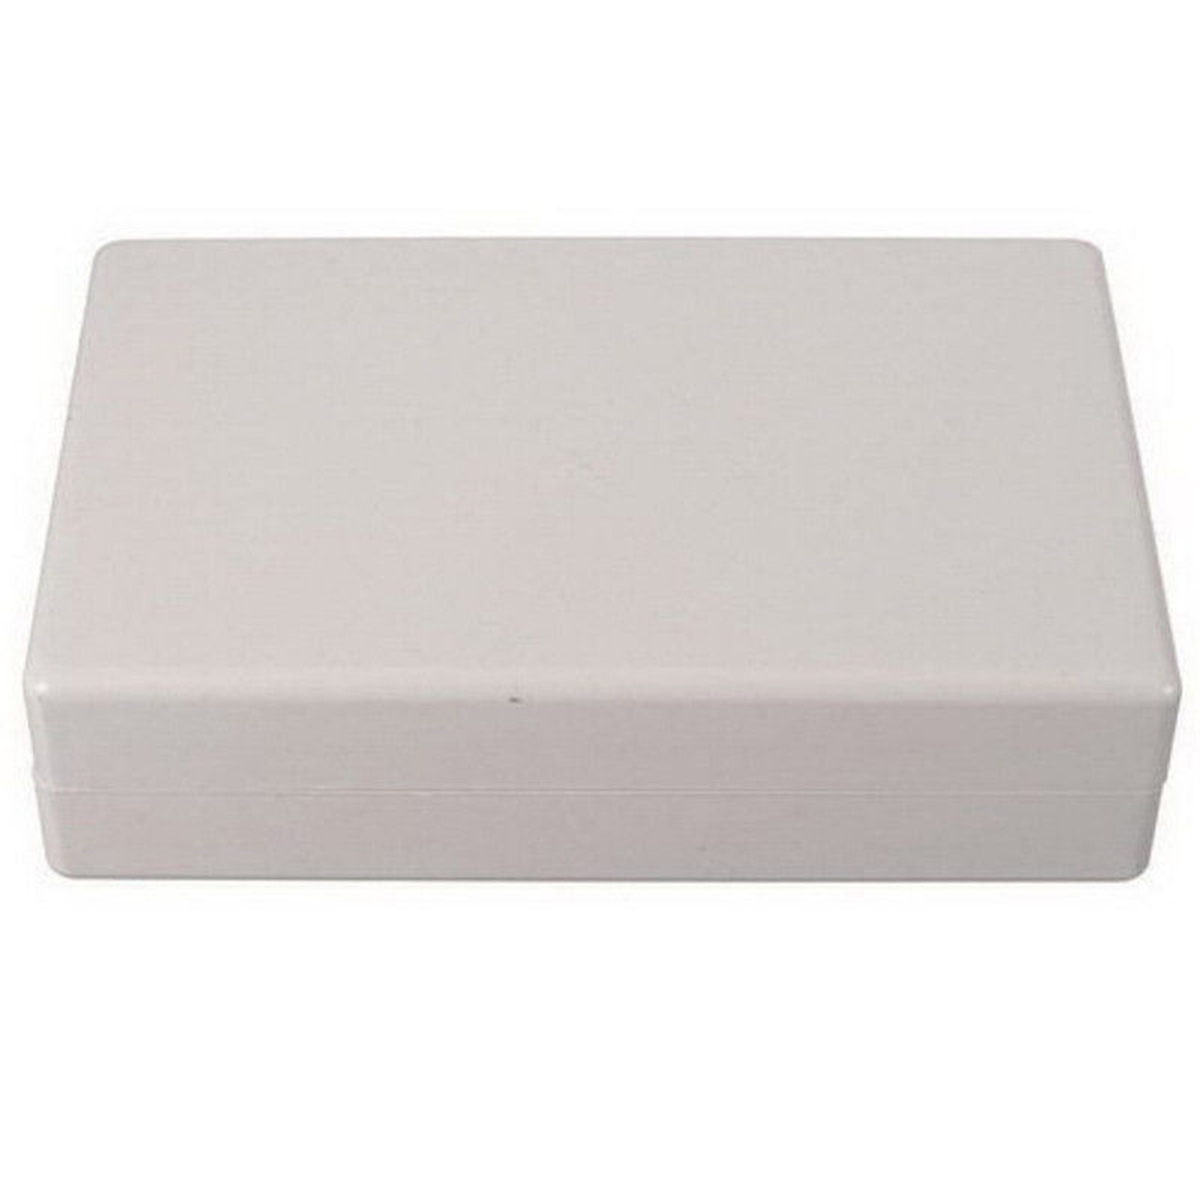 White Electronic Project Case Waterproof Plastic Cover Enclosure Box 125x80x32mm For Power Supply Units white plastic cuboid 2 4 way power distribution box guard cover